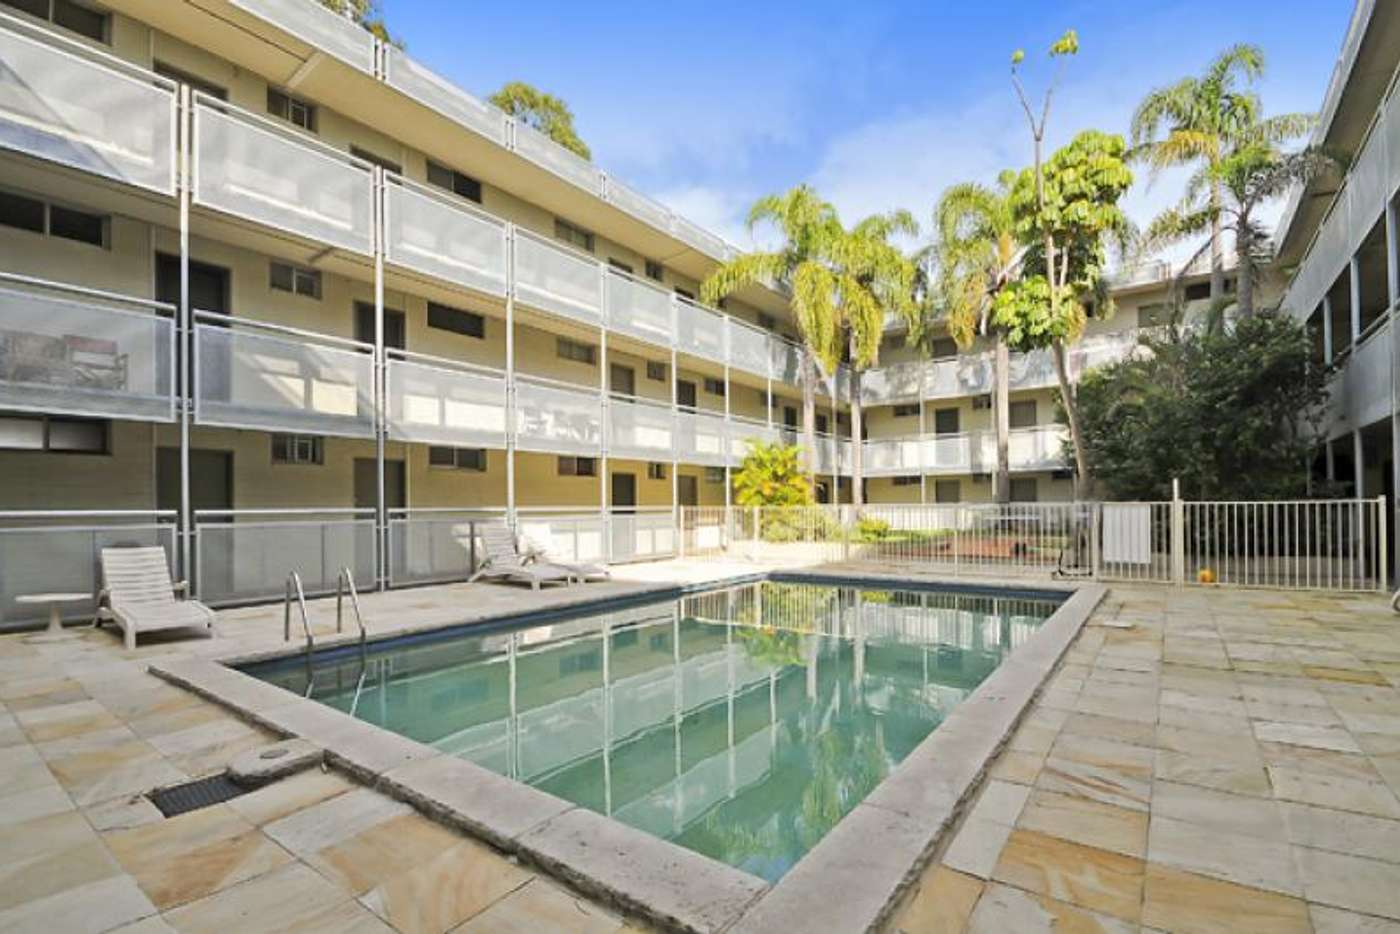 Main view of Homely studio listing, 61/595 Willoughby Road, Willoughby NSW 2068